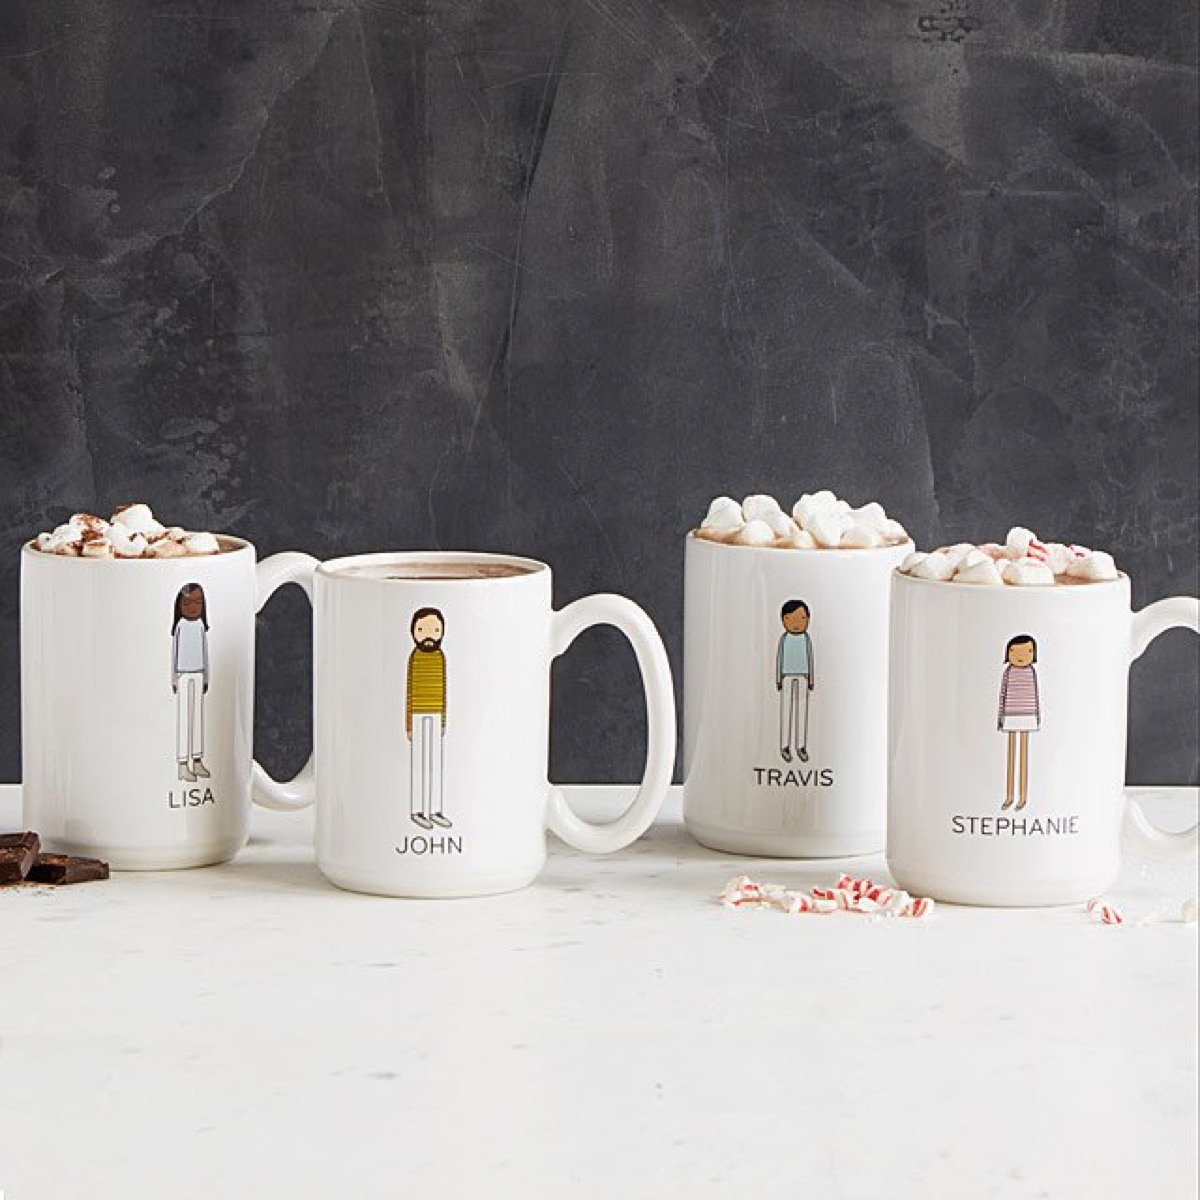 four white mugs with cartoon images and names on them